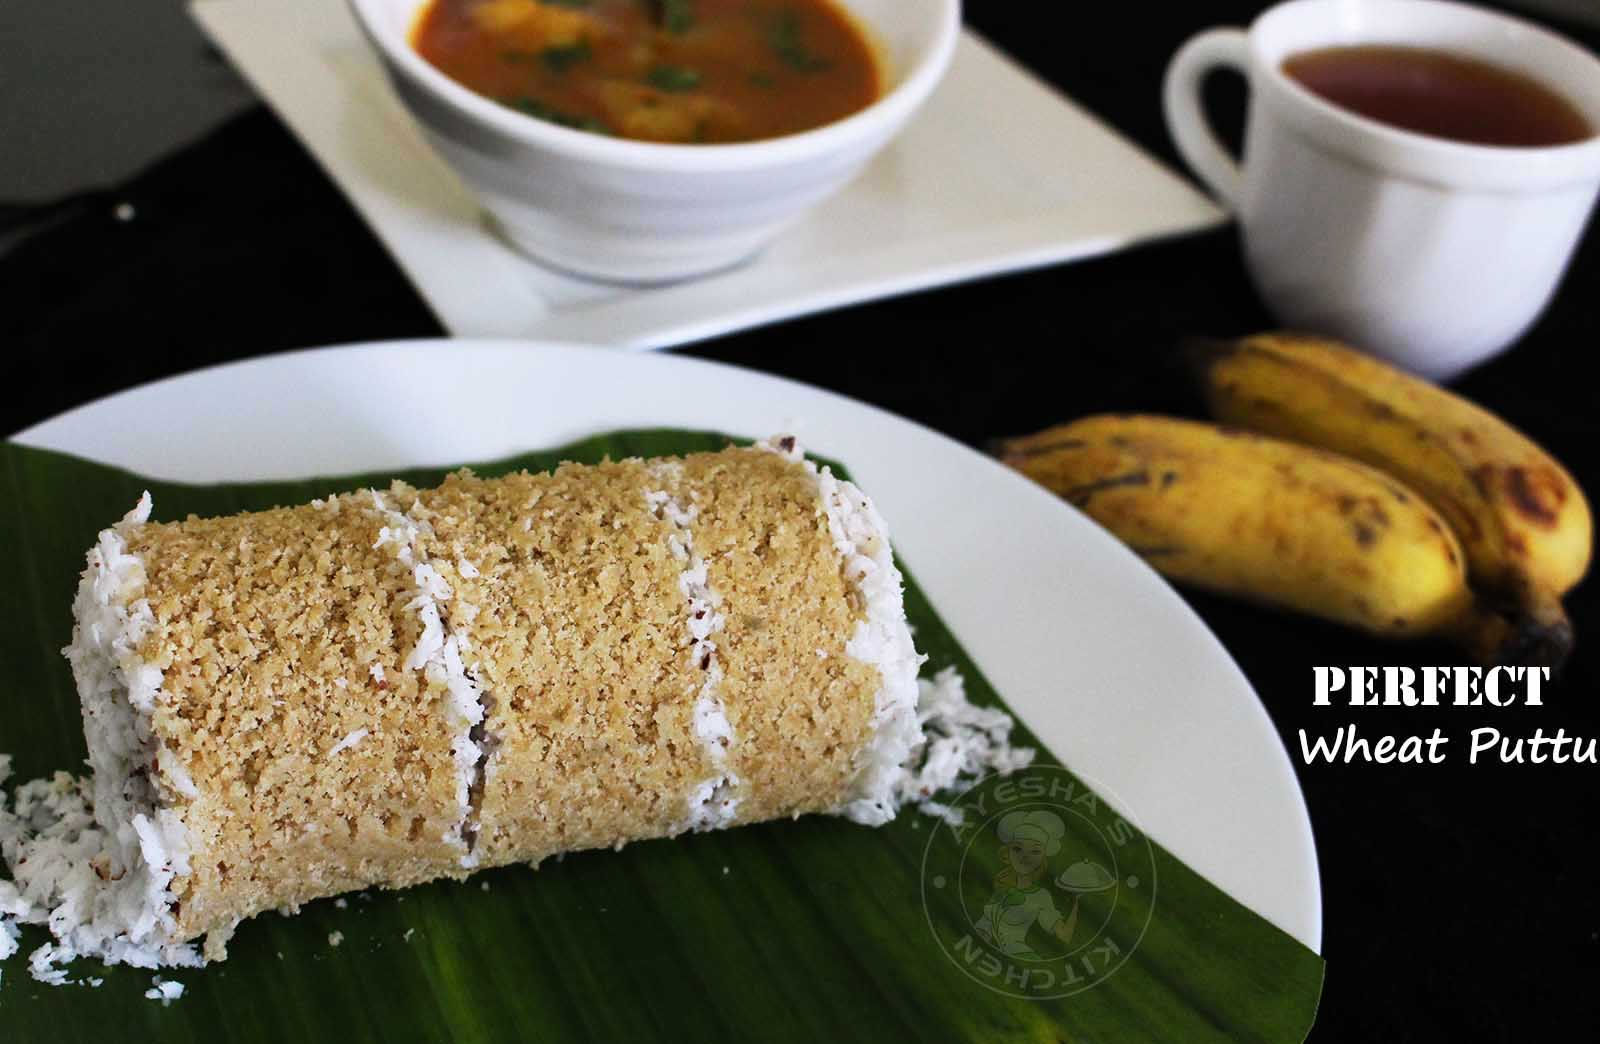 Cake Recipes In Kerala Style: HOW TO MAKE PERFECT SOFT WHEAT PUTTU / STEAMED CAKE